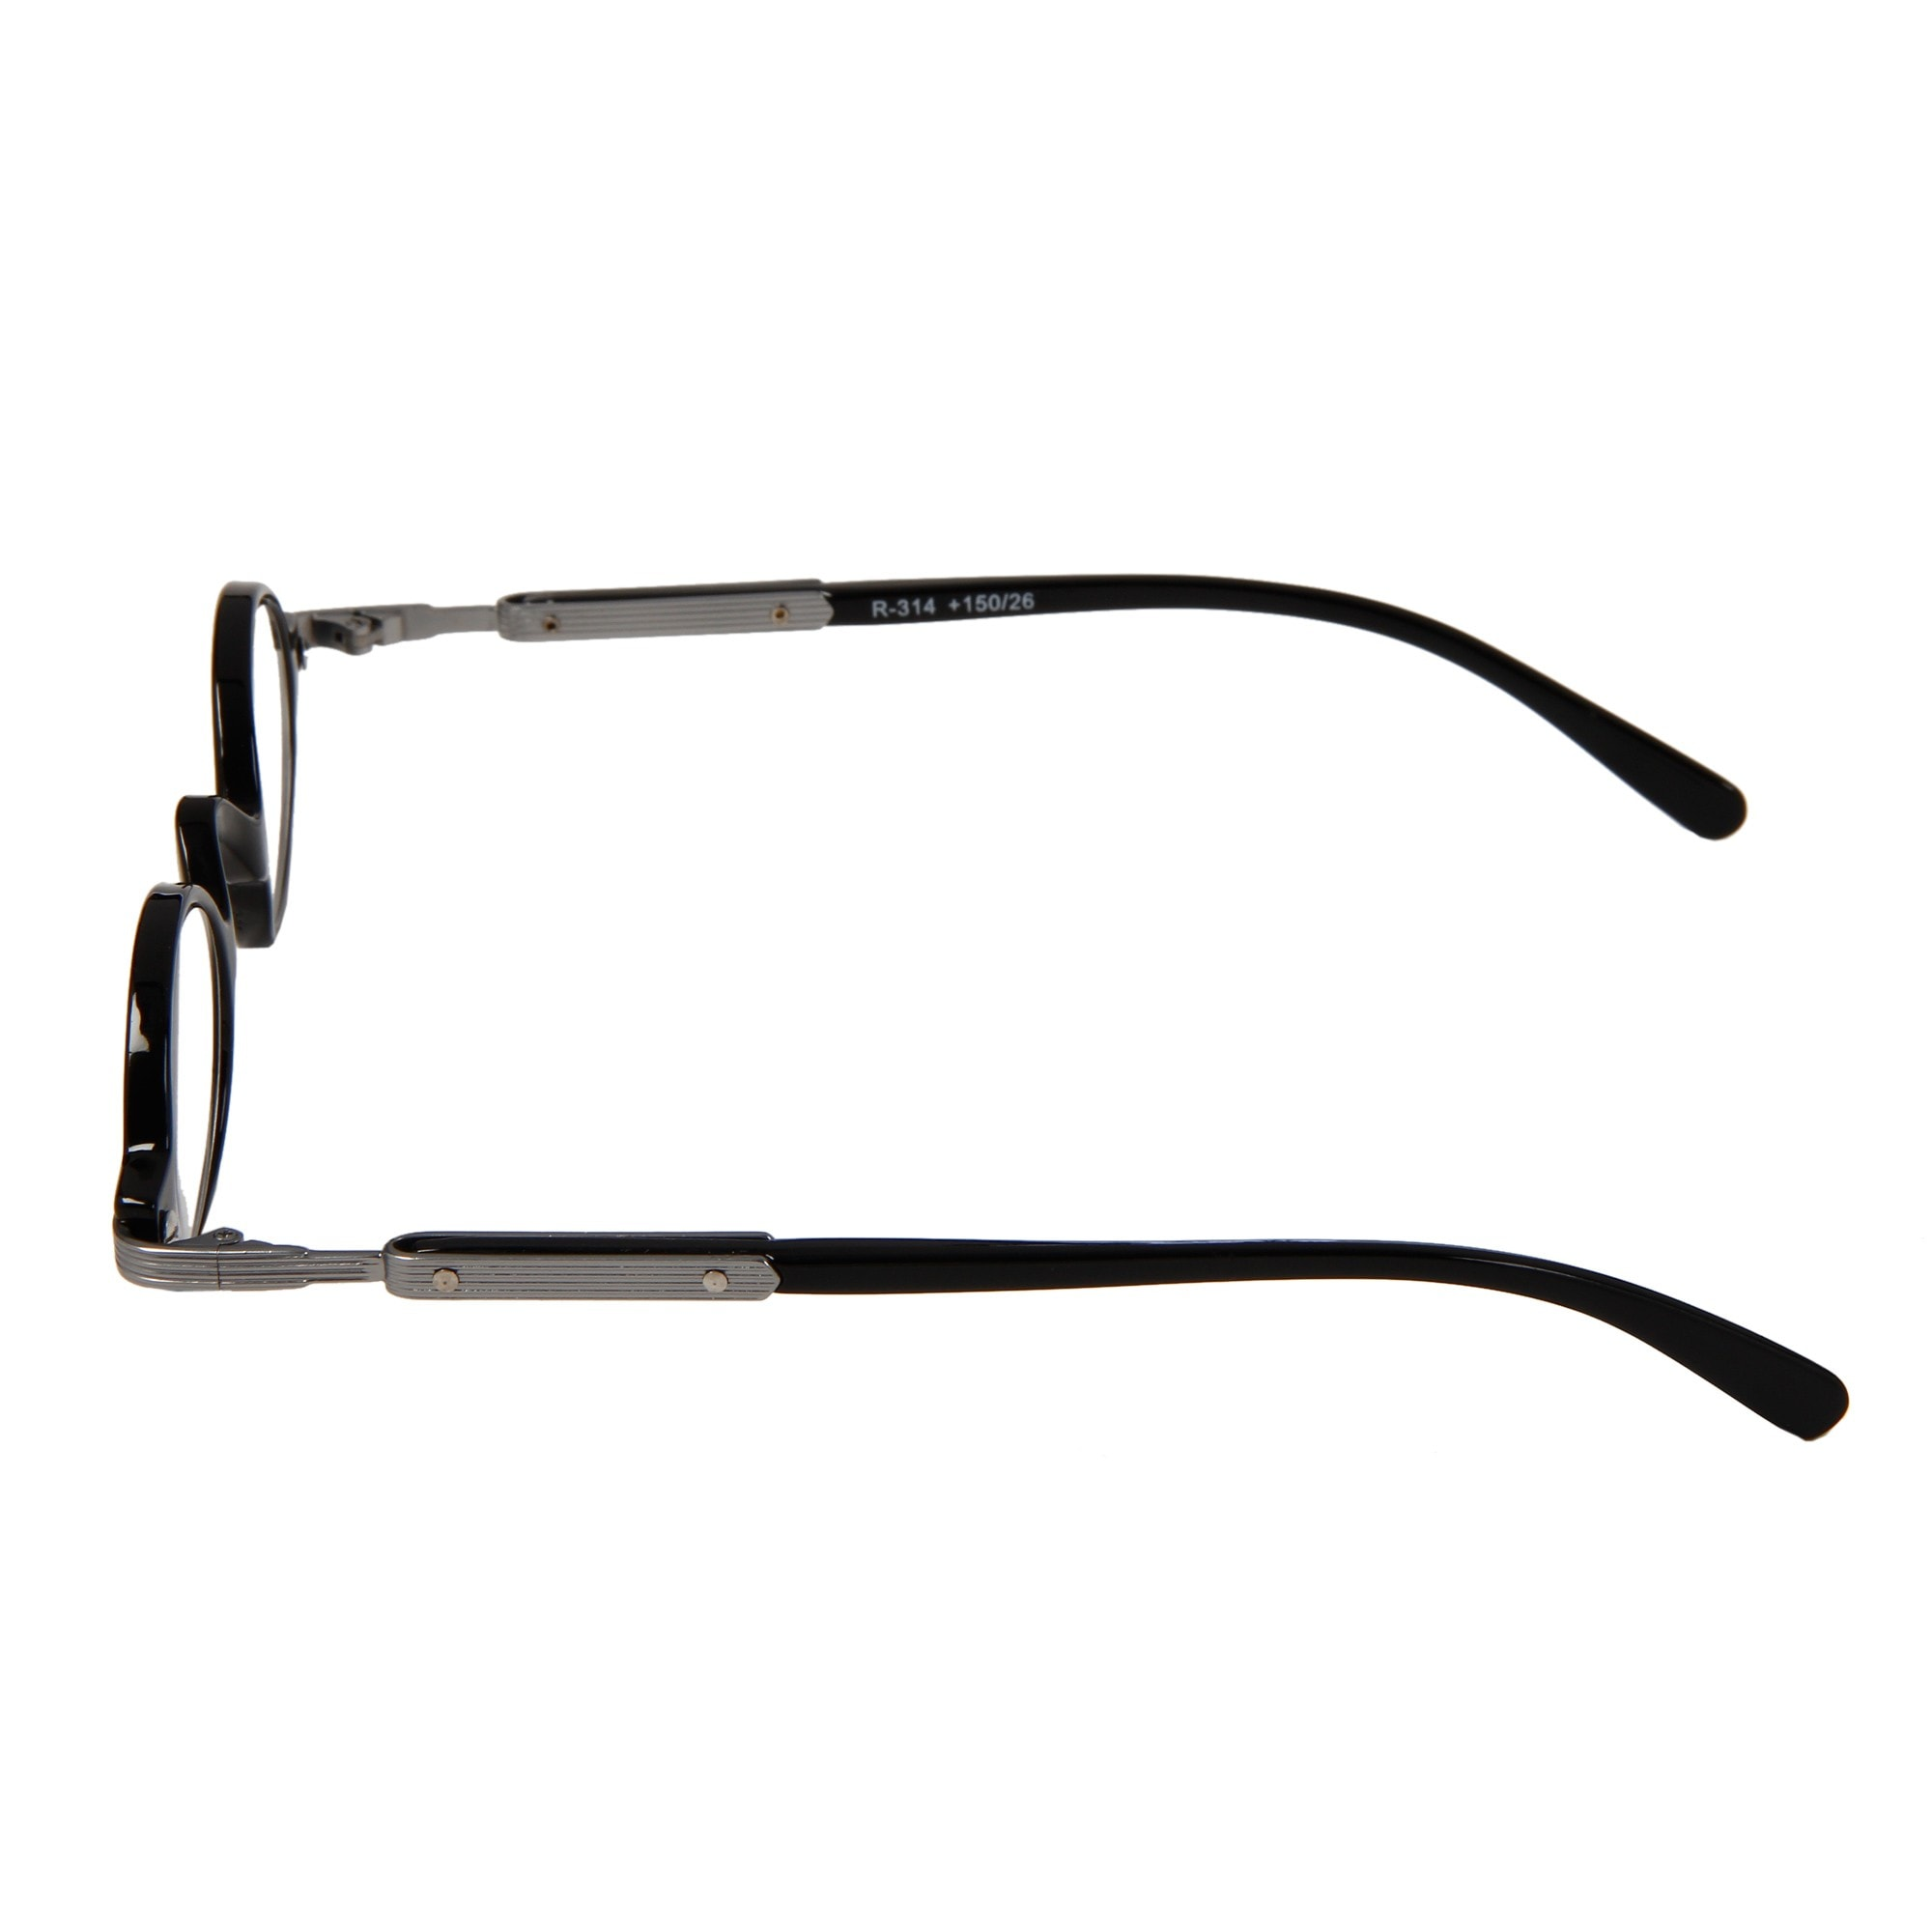 4a4c10a7068 Shop Hot Optix Unisex Retro Oval Plastic  Metal Reading Glasses - Free  Shipping On Orders Over  45 - Overstock - 6382598